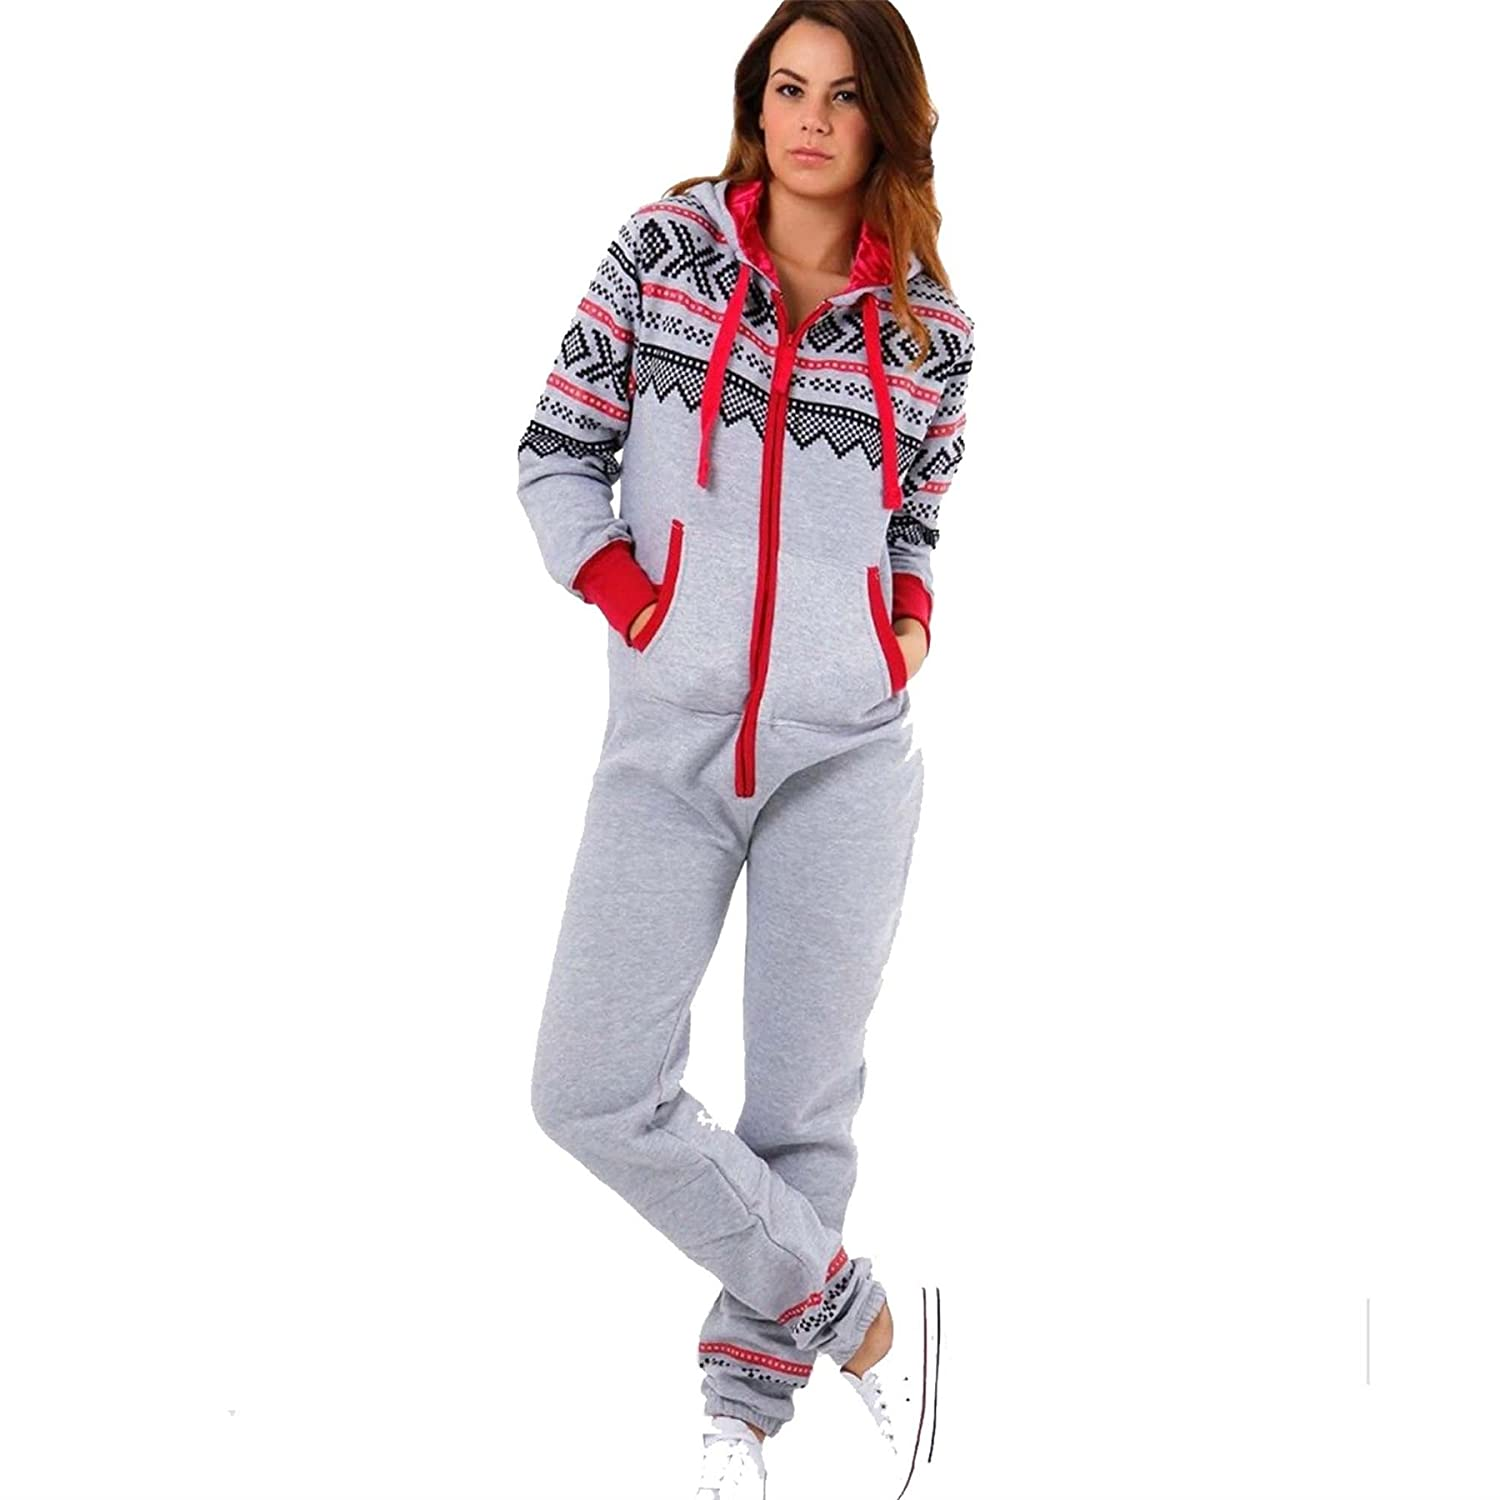 XPACCESSORIES Ladies Womens Long Sleeve Hooded Aztec Full Length Onesie Jumpsuit Adult Zip Up Fleece Playsuit All in One